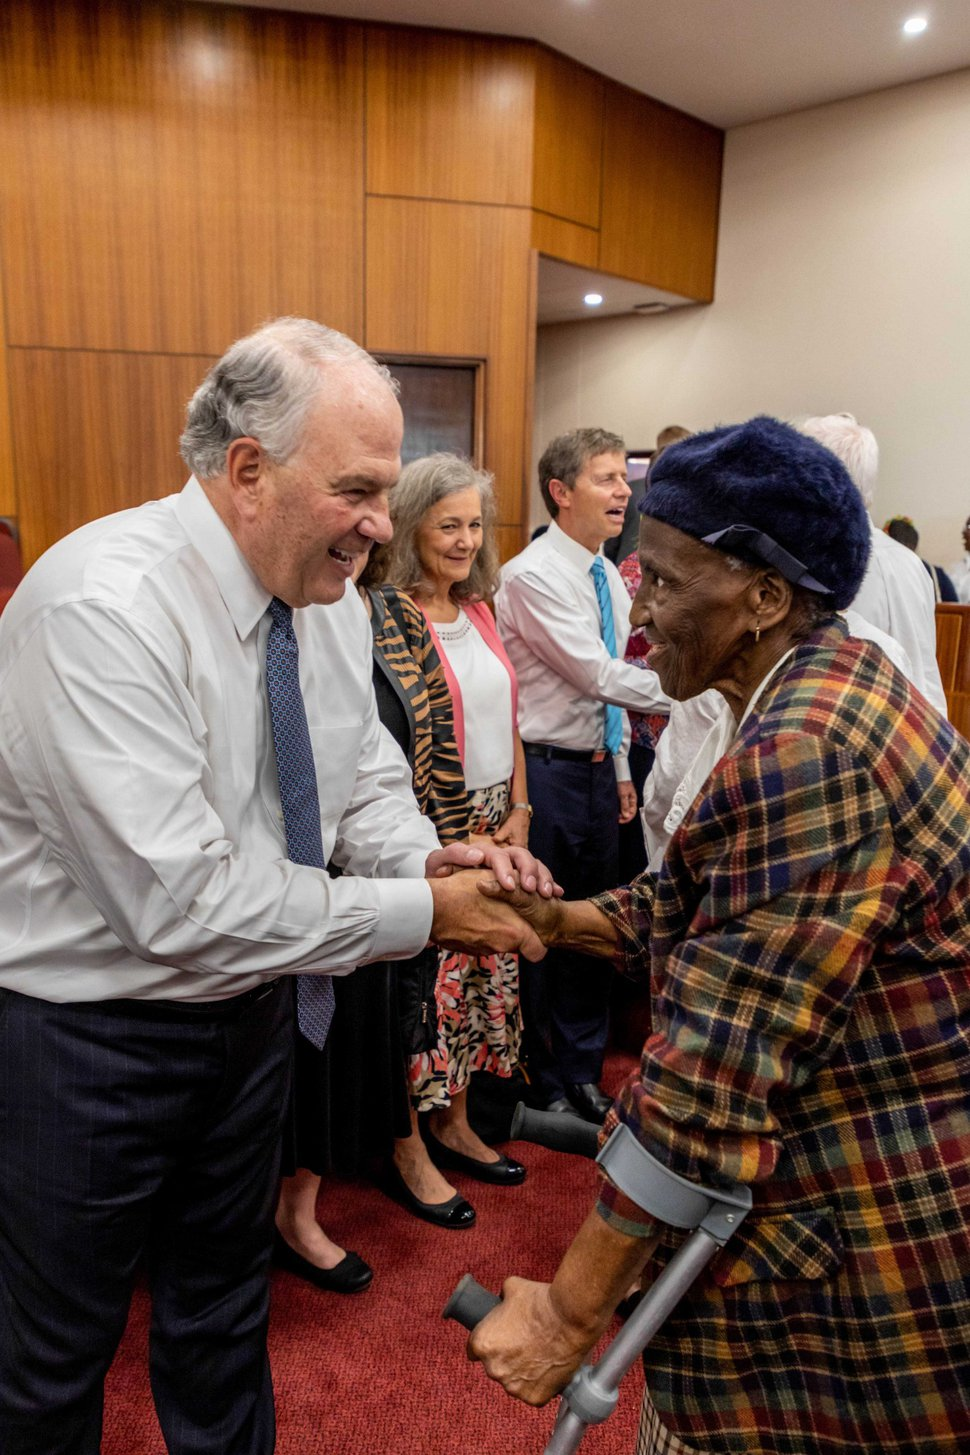 (Photo courtesy of The Church of Jesus Christ of Latter-day Saints) Elder Ronald A. Rasband of the Quorum of the Twelve Apostles interacts with a South African Latter-day Saint during his ministry trip there in February 2020. There are over 65,000 church members and 190 congregations in the country.